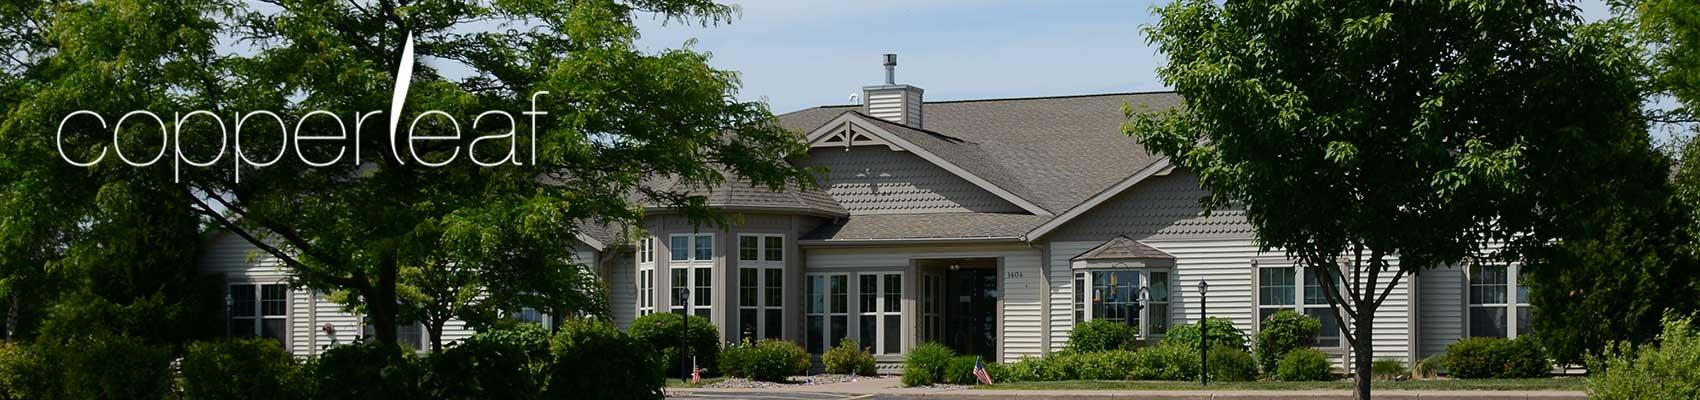 senior assisted living in Van Dyne Wisconsin Fond du Lac County